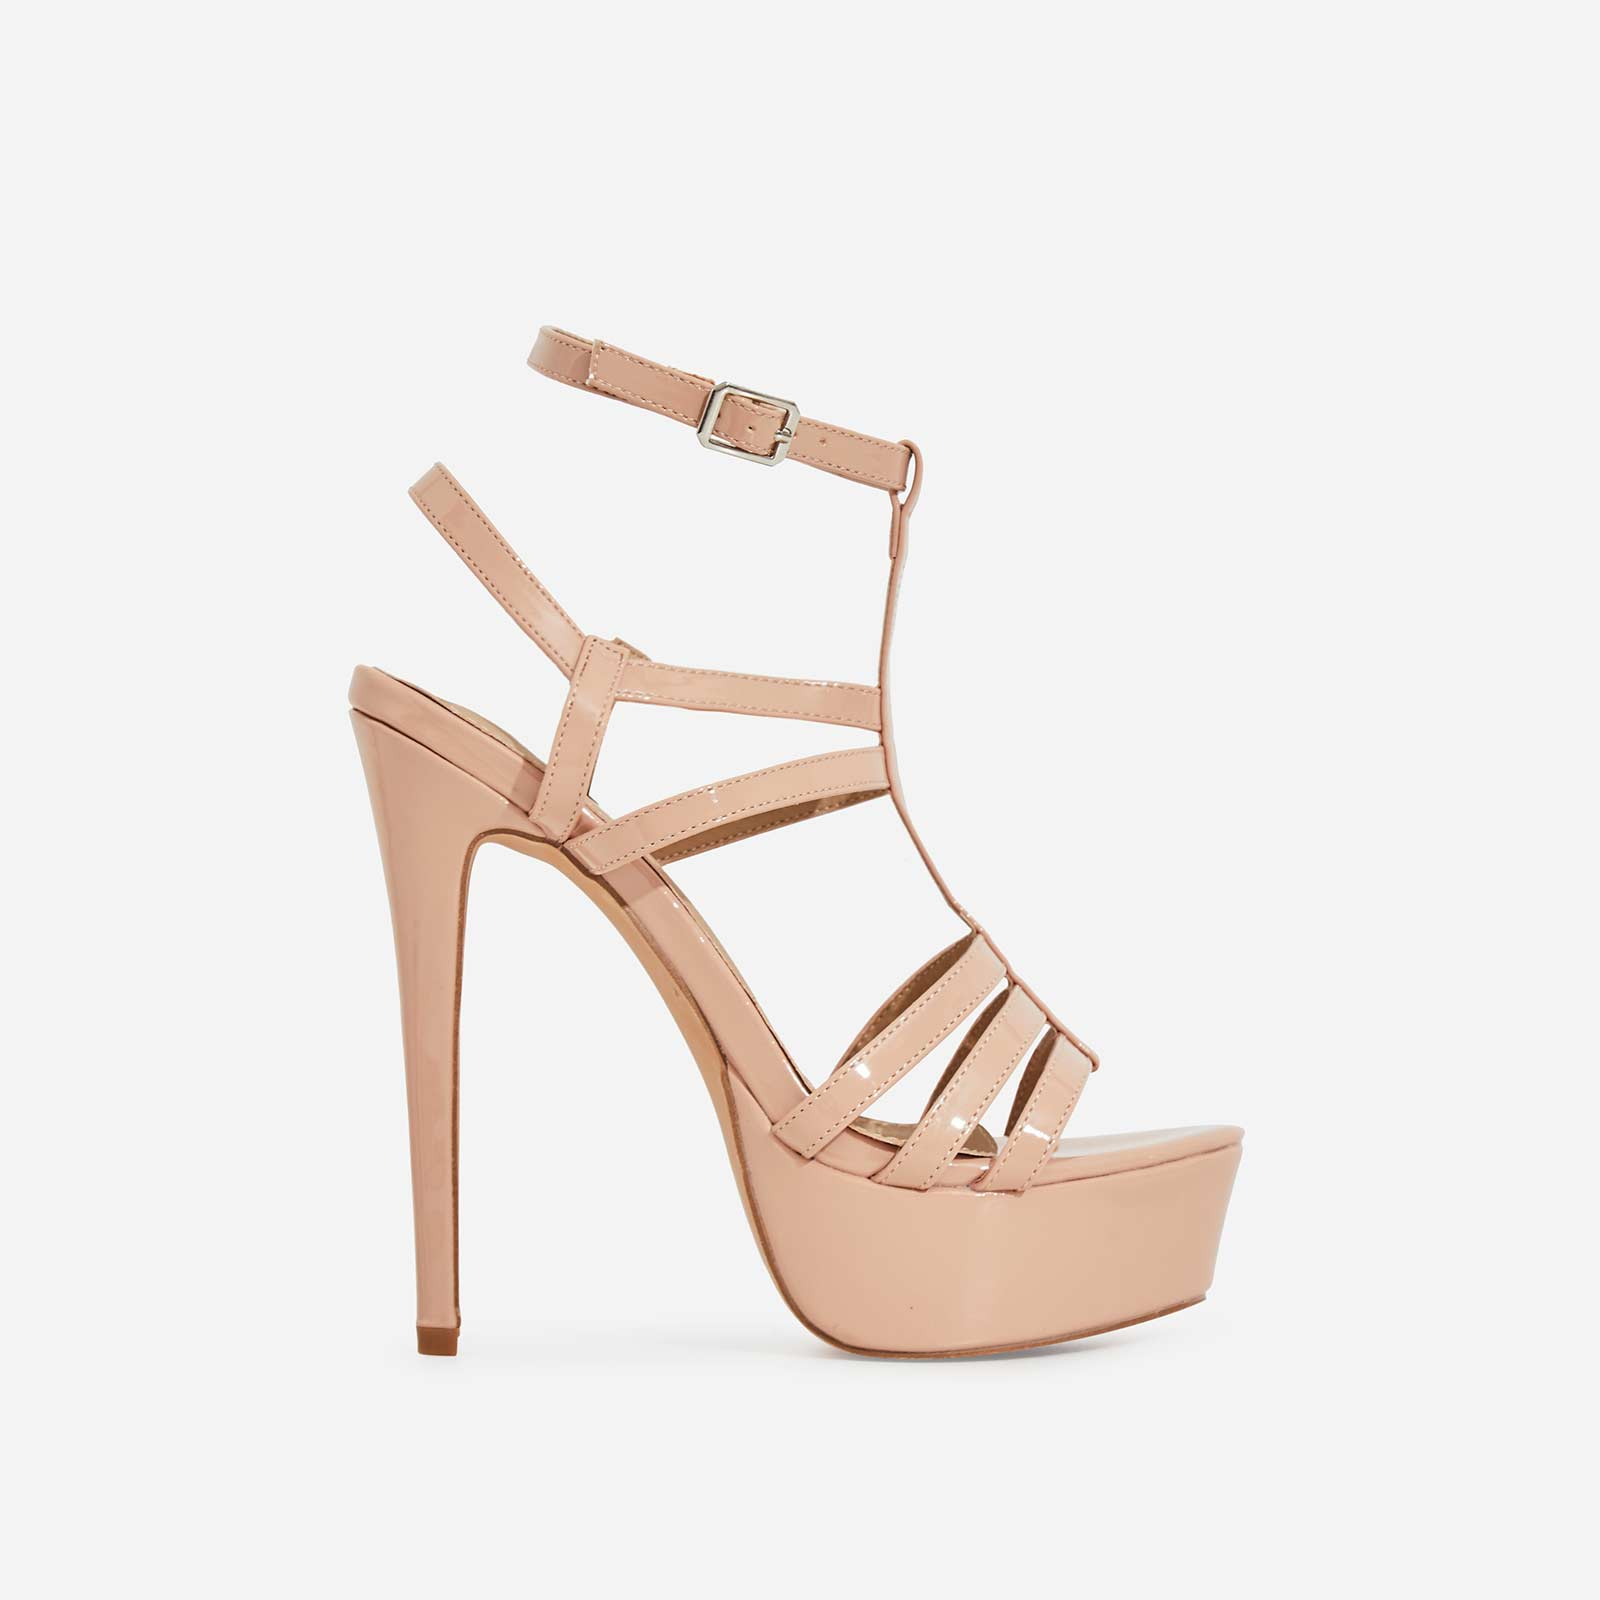 Iconic Cage Platform Heel In Nude Patent